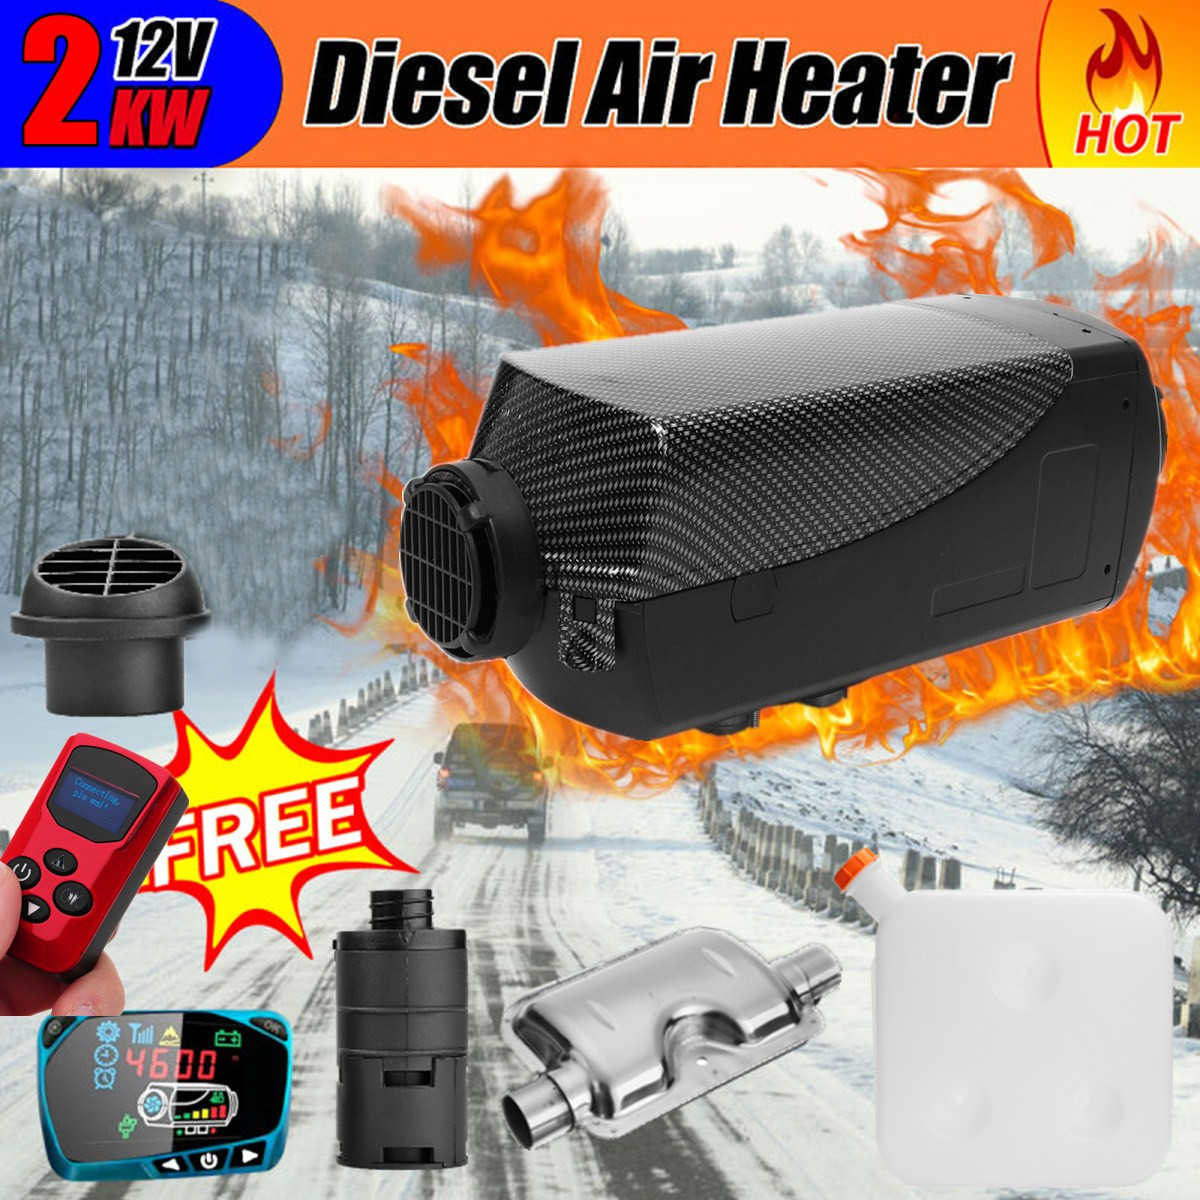 KAOLALI 2KW Air Diesels Heater Parking Heater 12V Diesel Parking Heater Set Monitor Parking Warmer Remote Control Display Fast Heating Car Heater/for RV Bus Trailer Motorhome and Boats Black Red